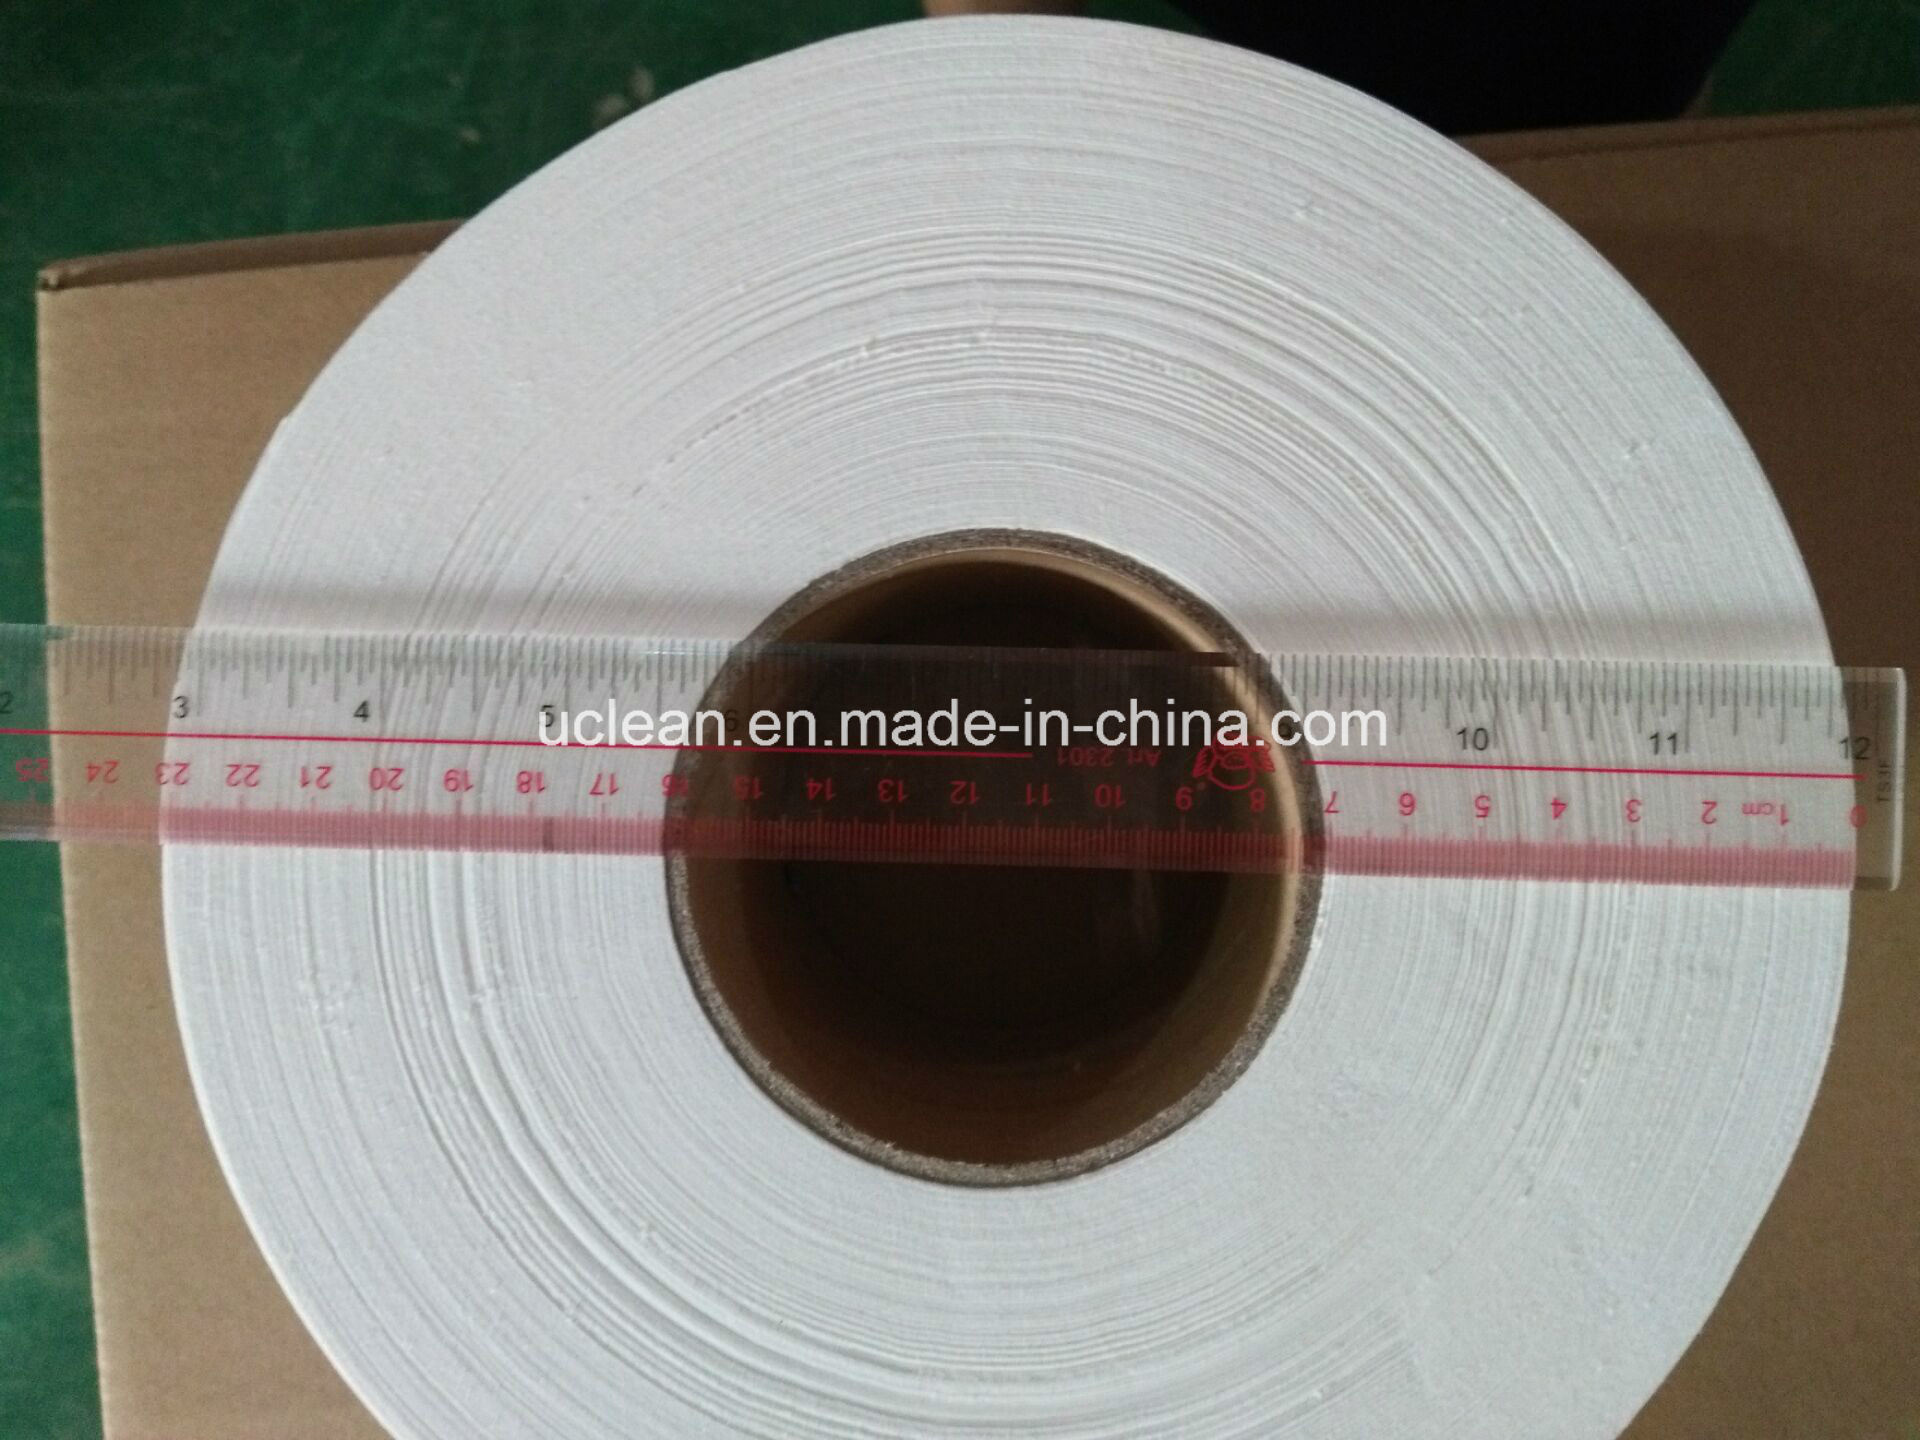 J1-500r 1ply Recycle Jumbo Roll Toilet Tissue pictures & photos